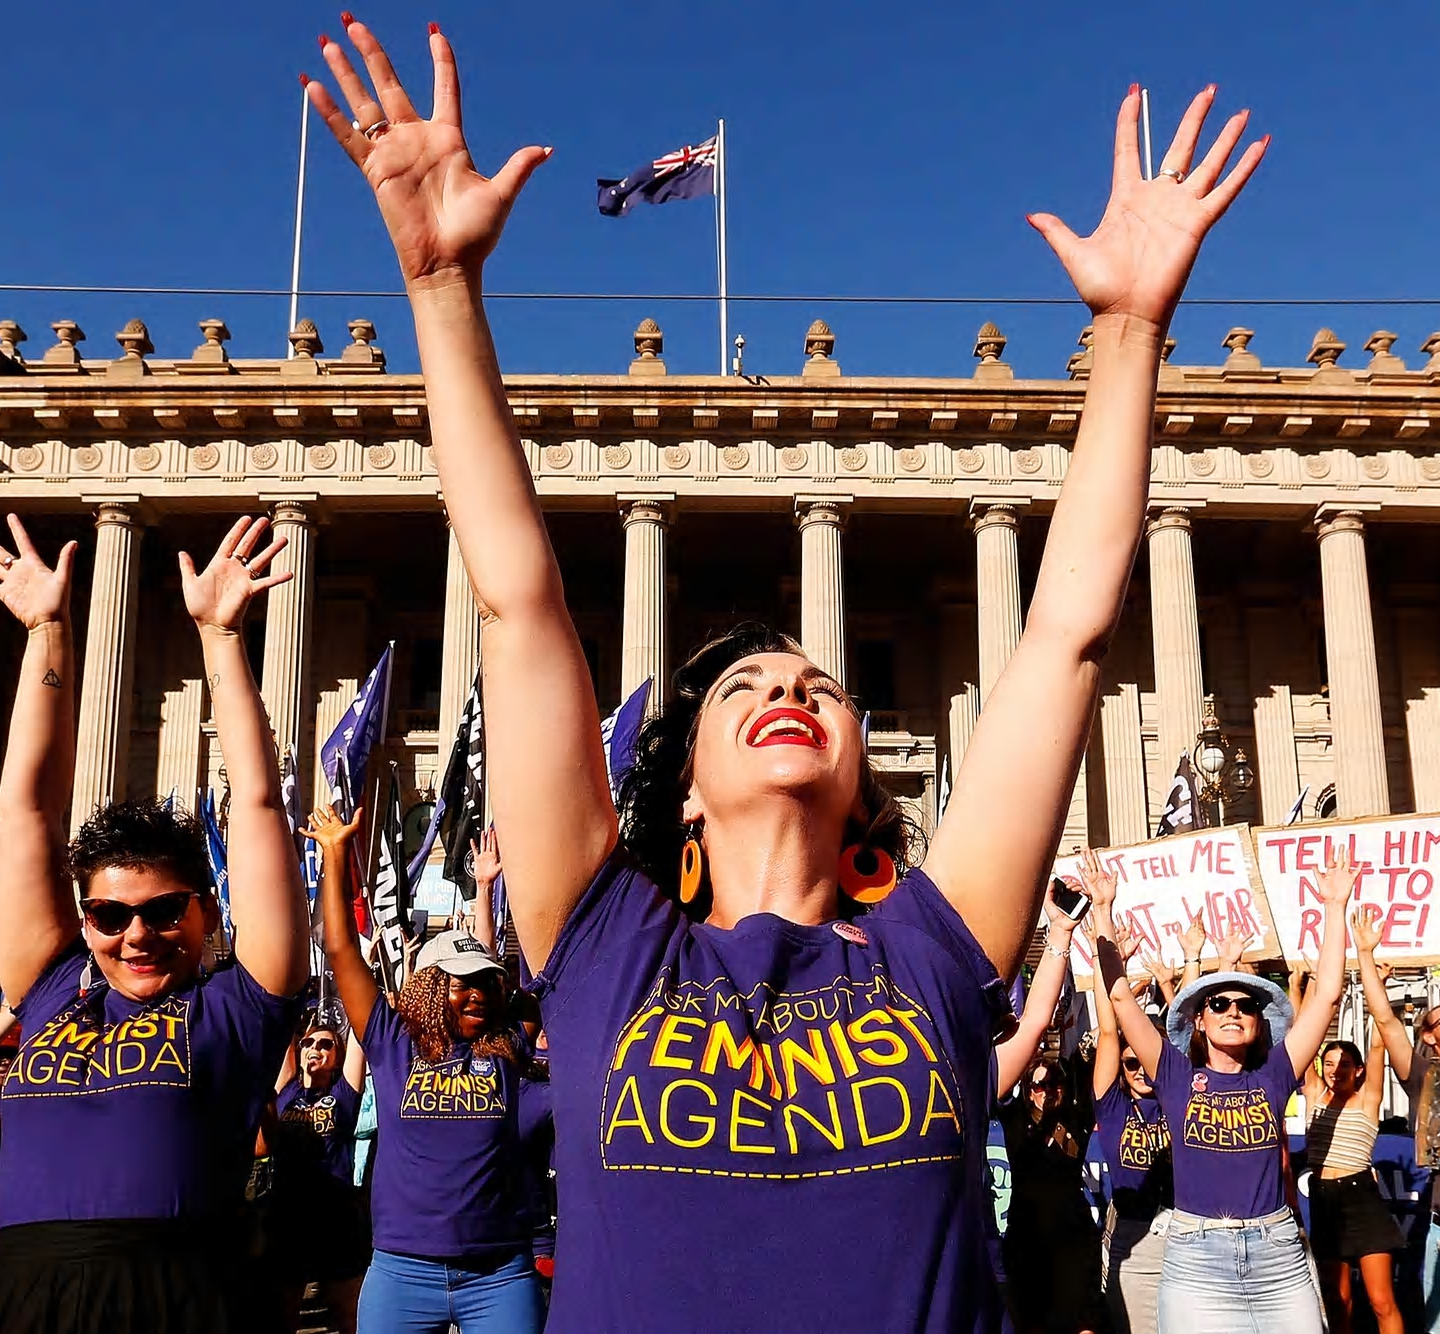 The International Women's day 2017: a global day of resistance in many ways